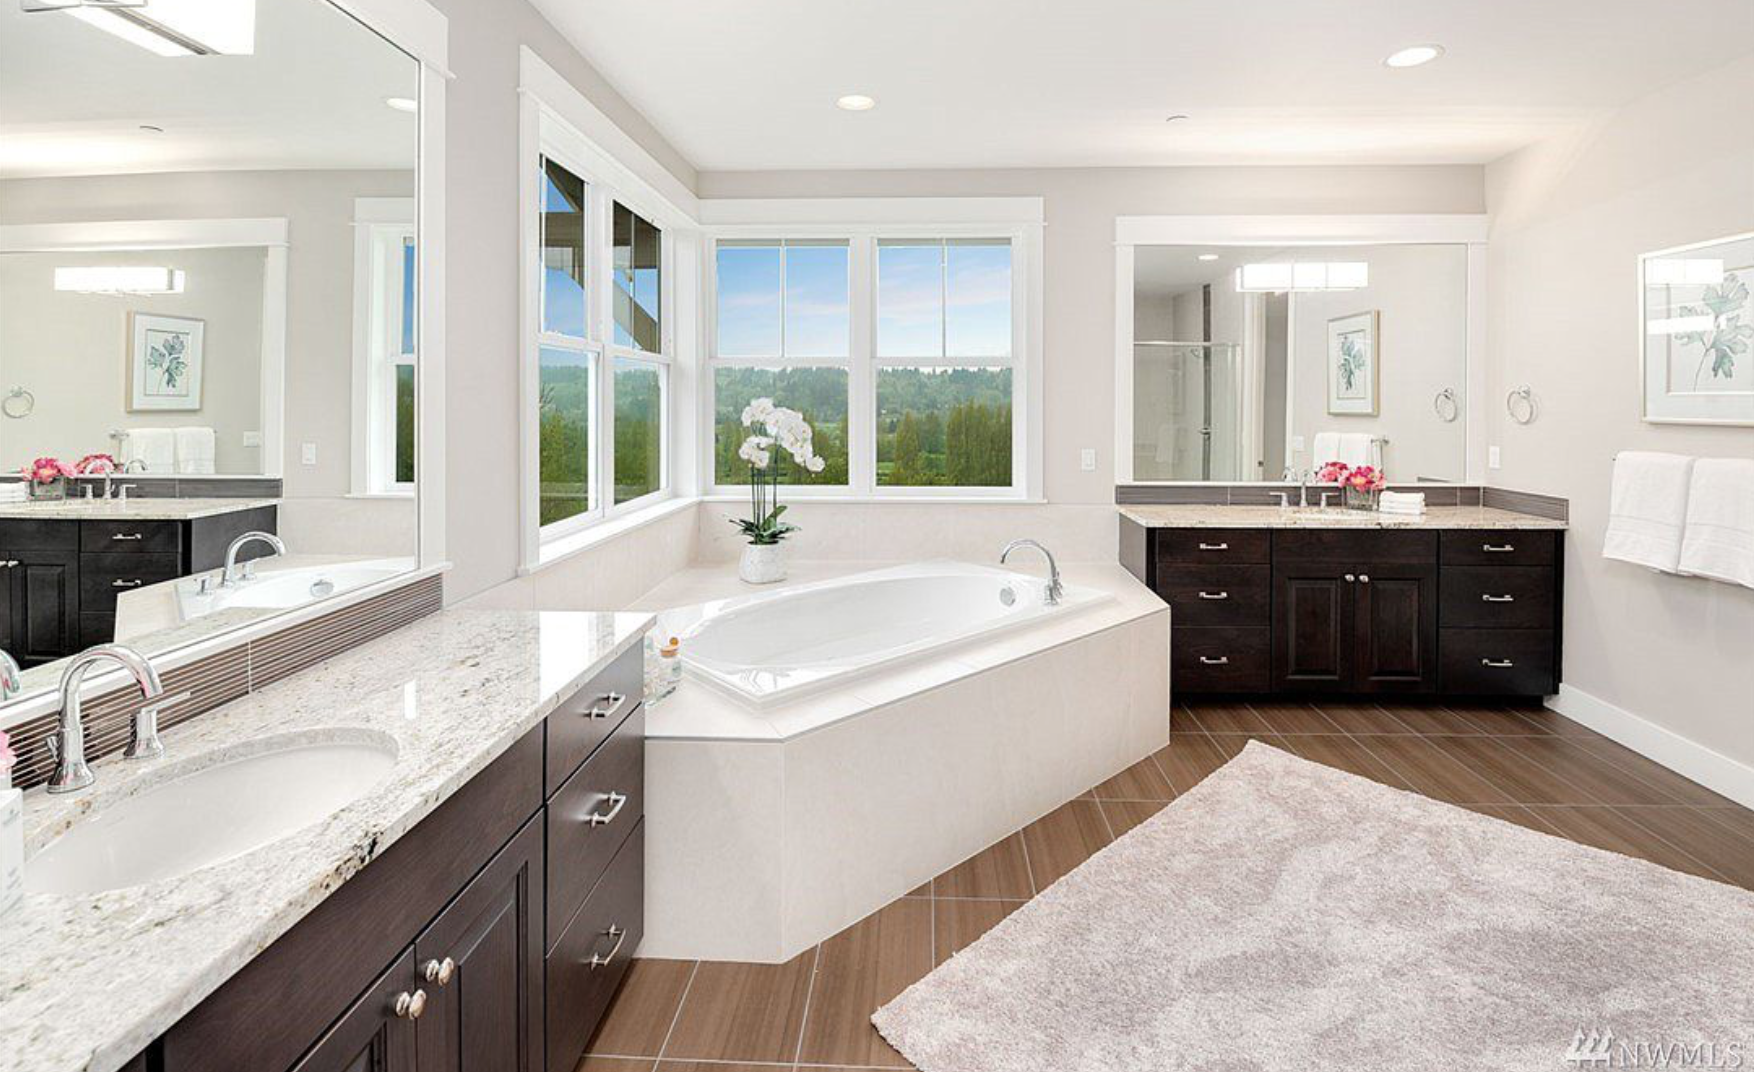 The master bath is complete with his and her's vanities as well as a soaking tub looking out onto the protected wetlands!